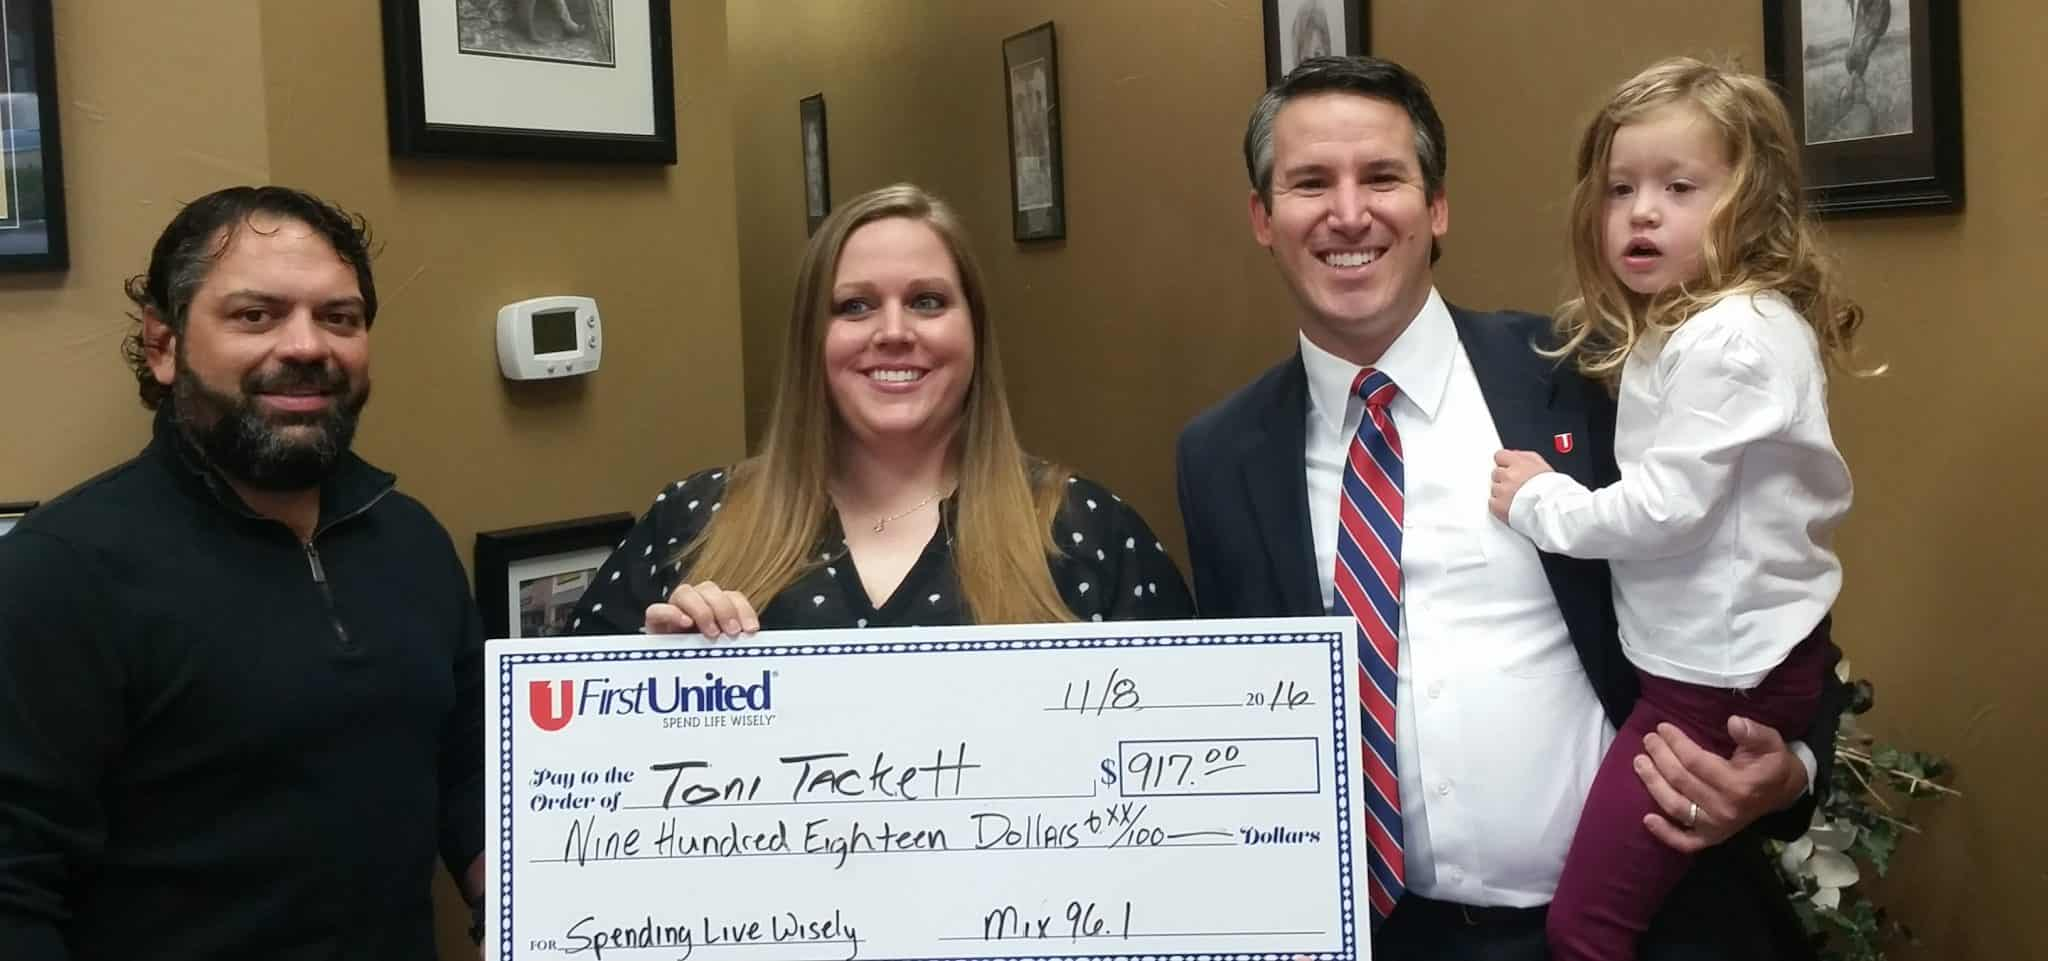 Spend Life Wisely Winner Toni Tackett